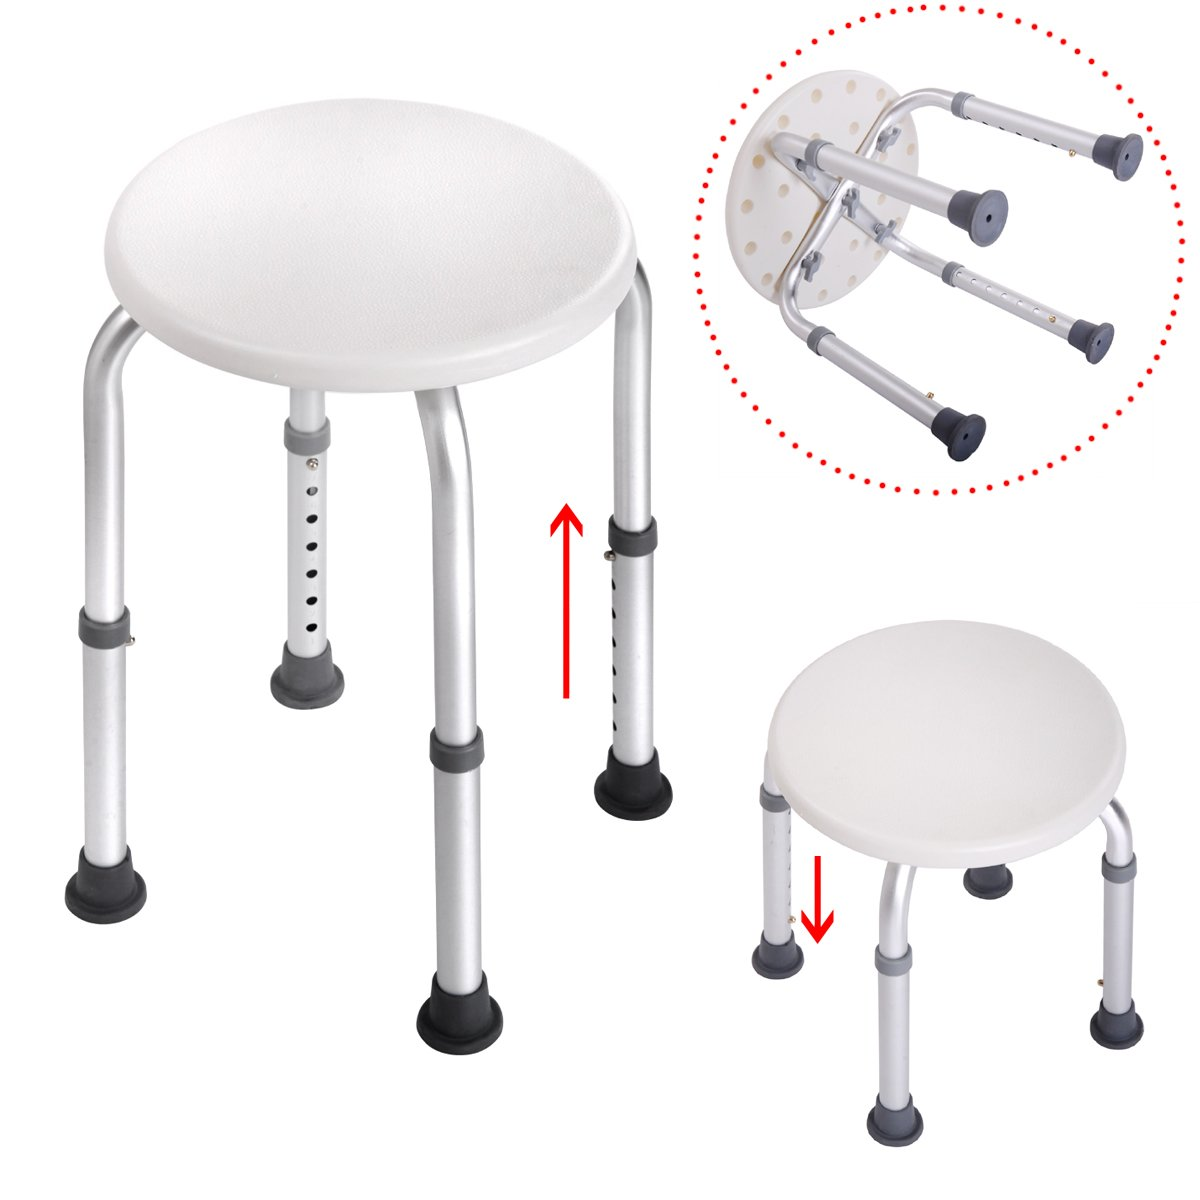 JAXPETY 7 Height Adjustable Stool Bath Bench Lightweight Shower with Non-Slip Seat Round , White